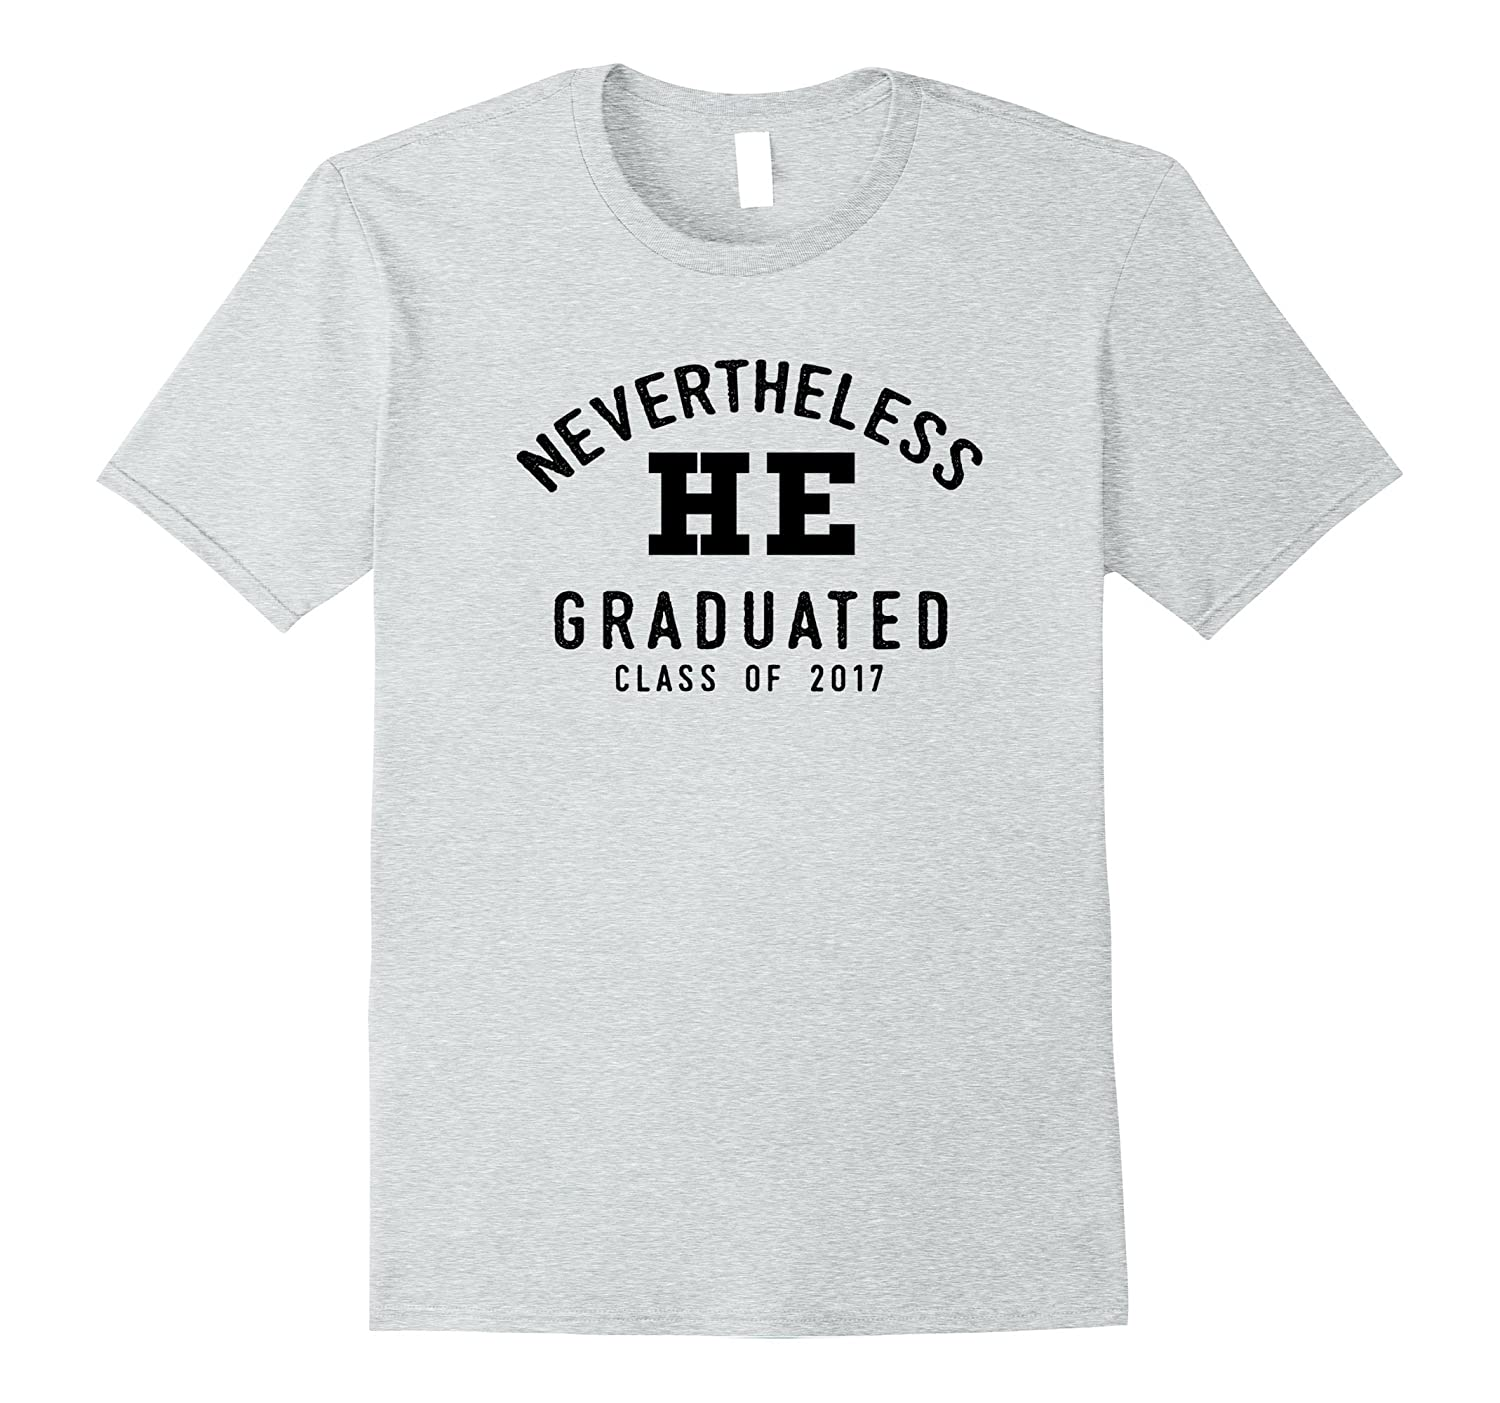 Funny saying graduation gift for him novelty t-shirt-Vaci